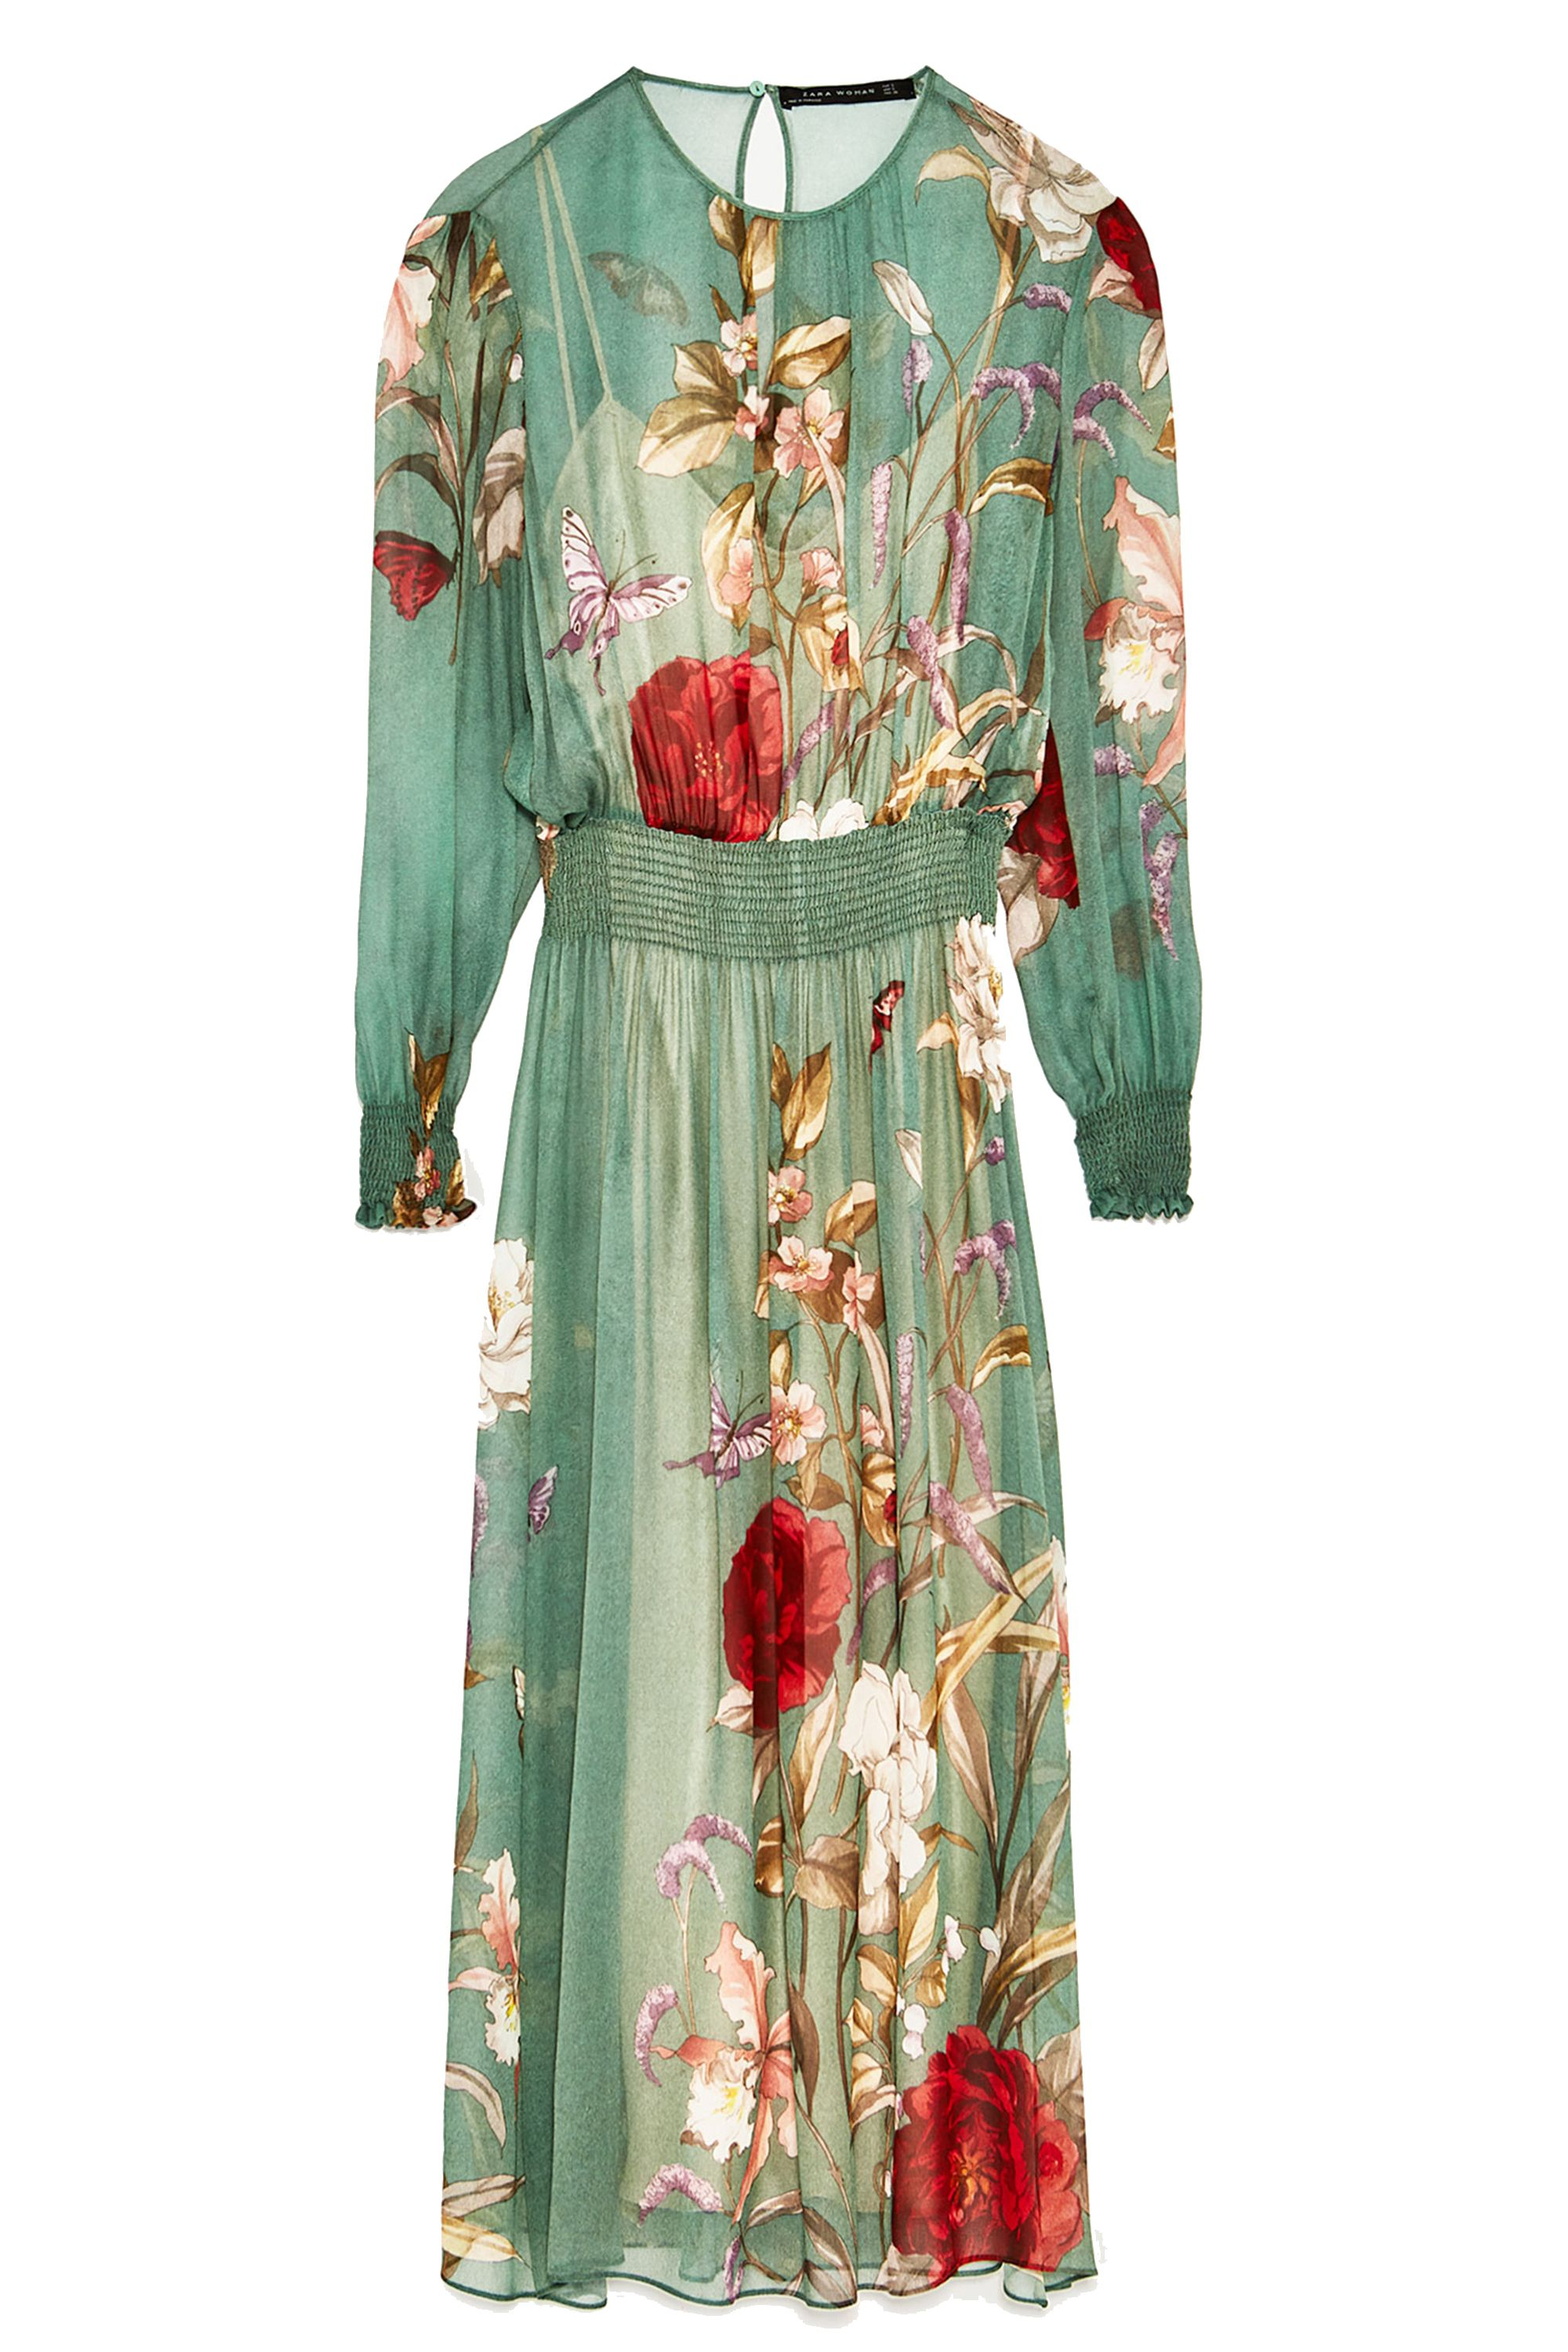 What to wear to a summer 2017 wedding 30 wedding guest dresses what to wear to a summer 2017 wedding 30 wedding guest dresses for summer ombrellifo Image collections